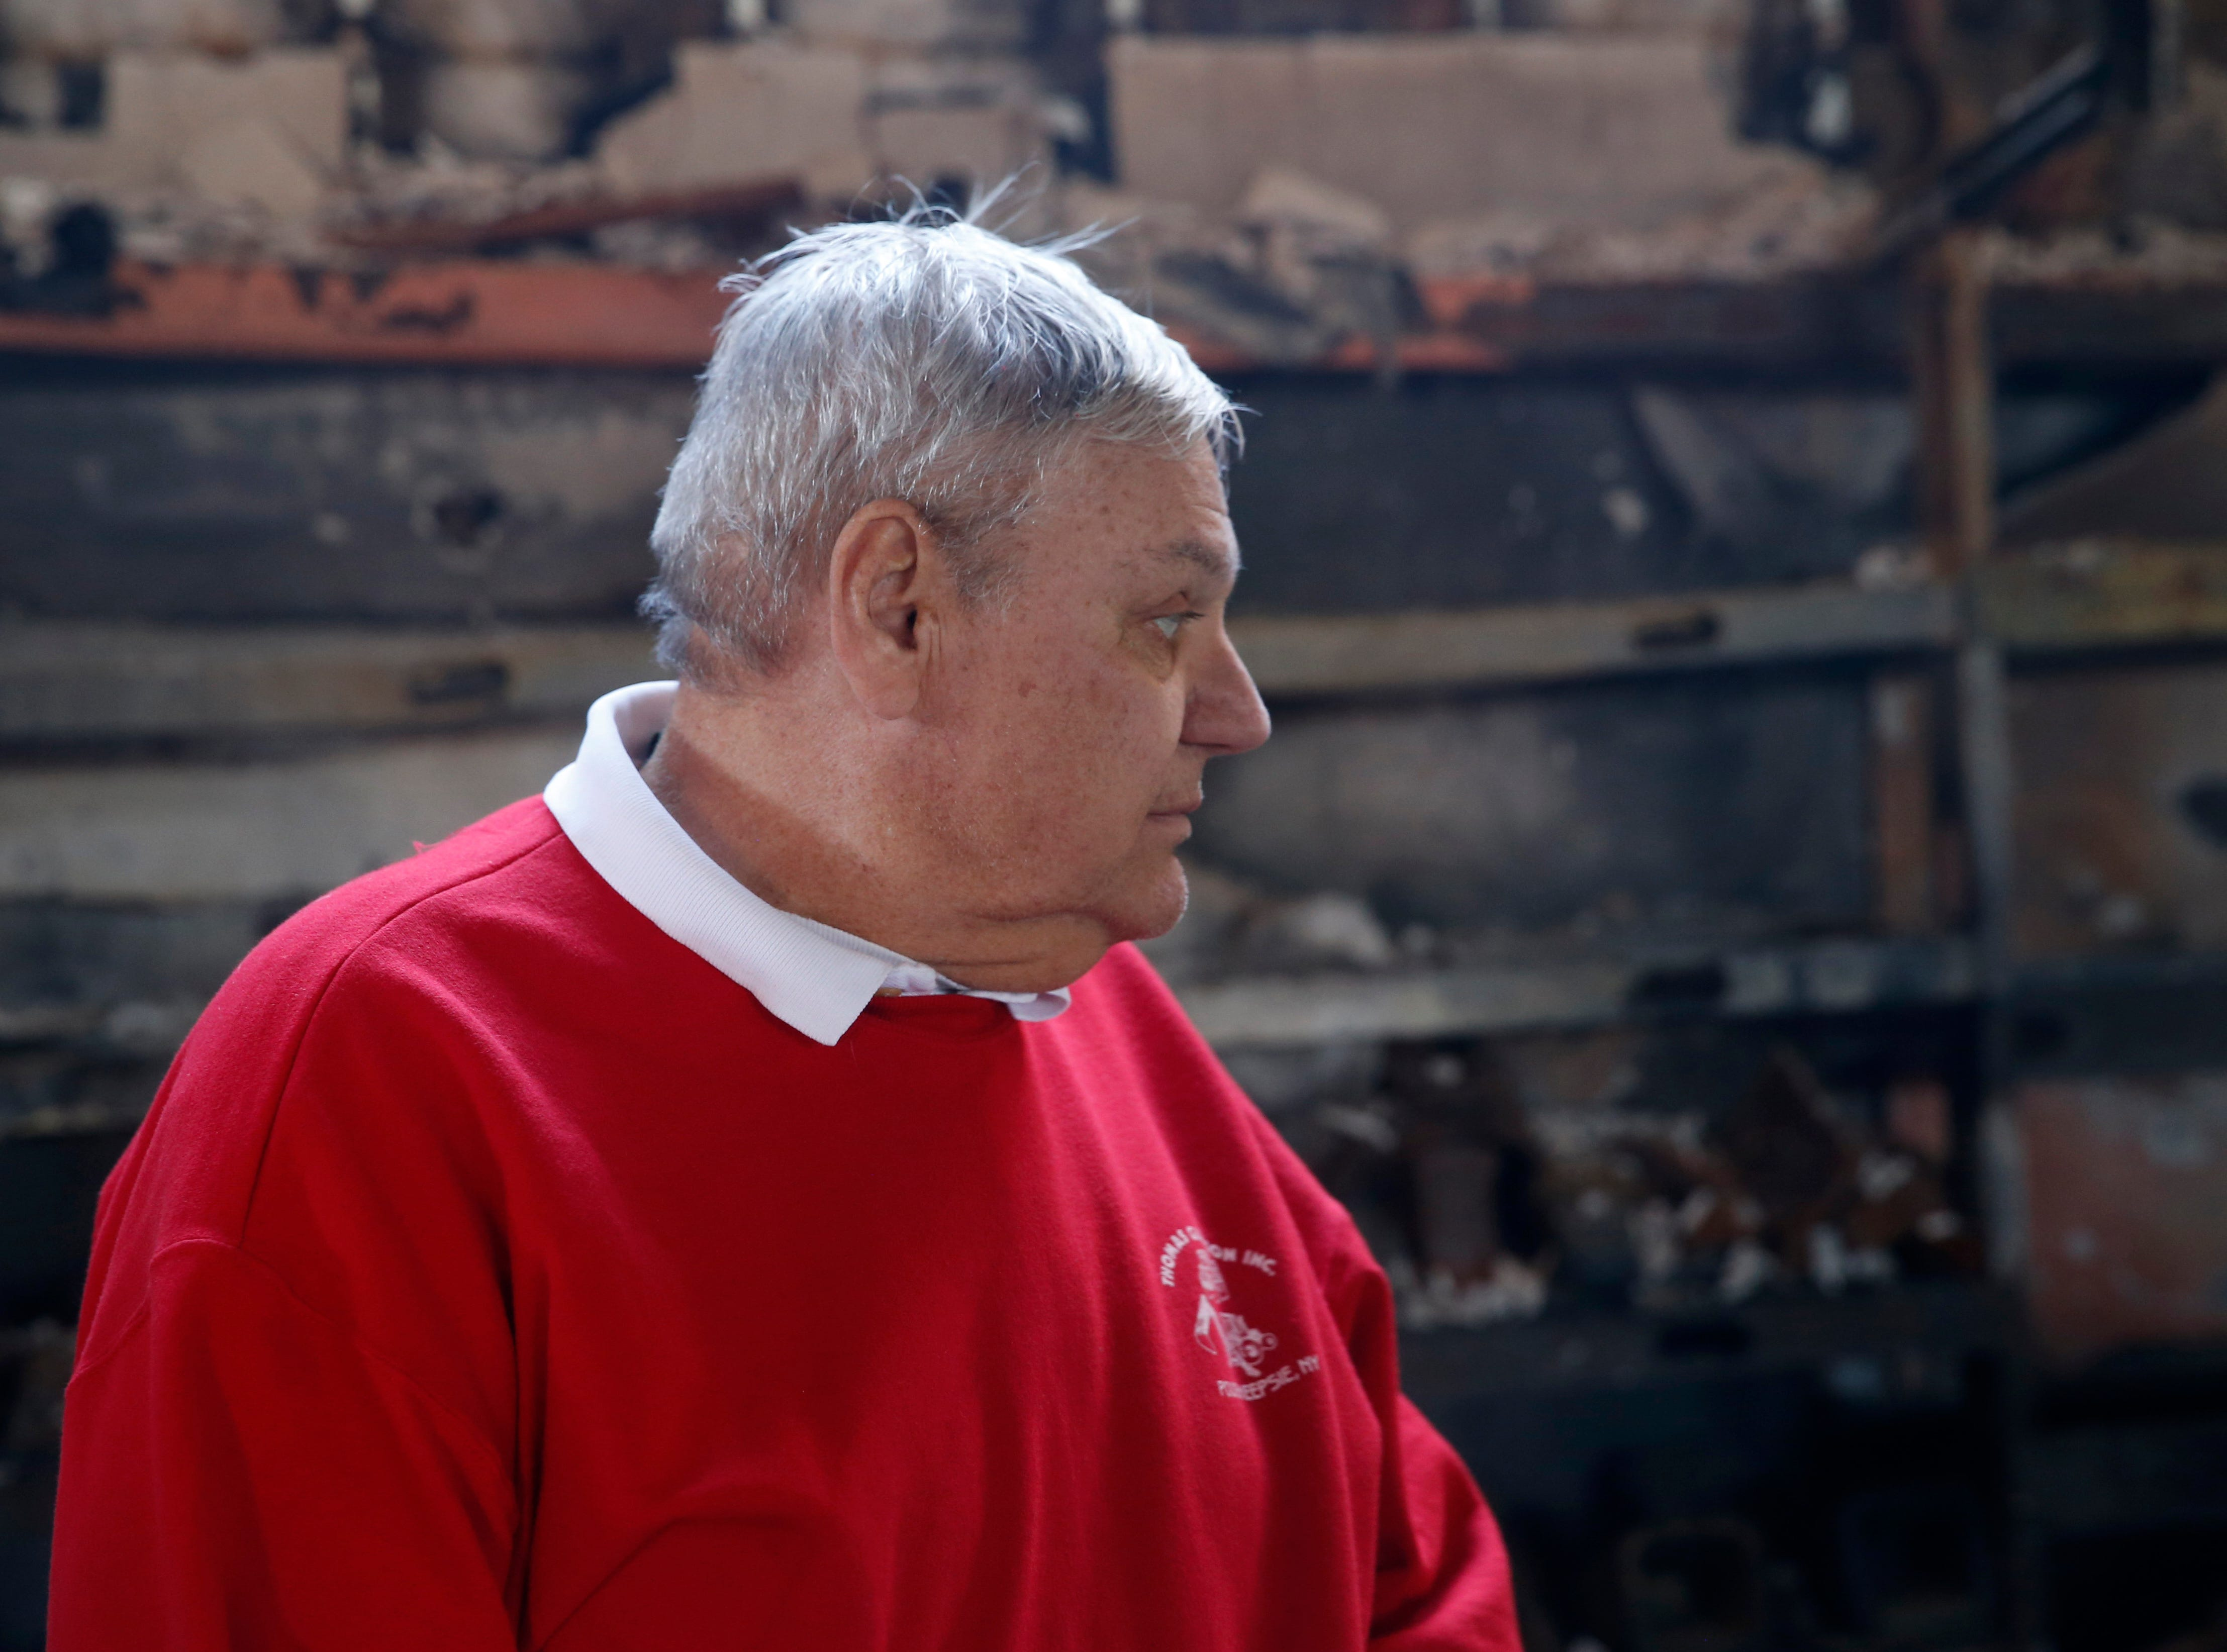 Thomas Gleason inside his company's building in the Town of Poughkeepsie on April 17, 2019. A massive fire in March destroyed much of the building's contents and the structural integrity of the building.